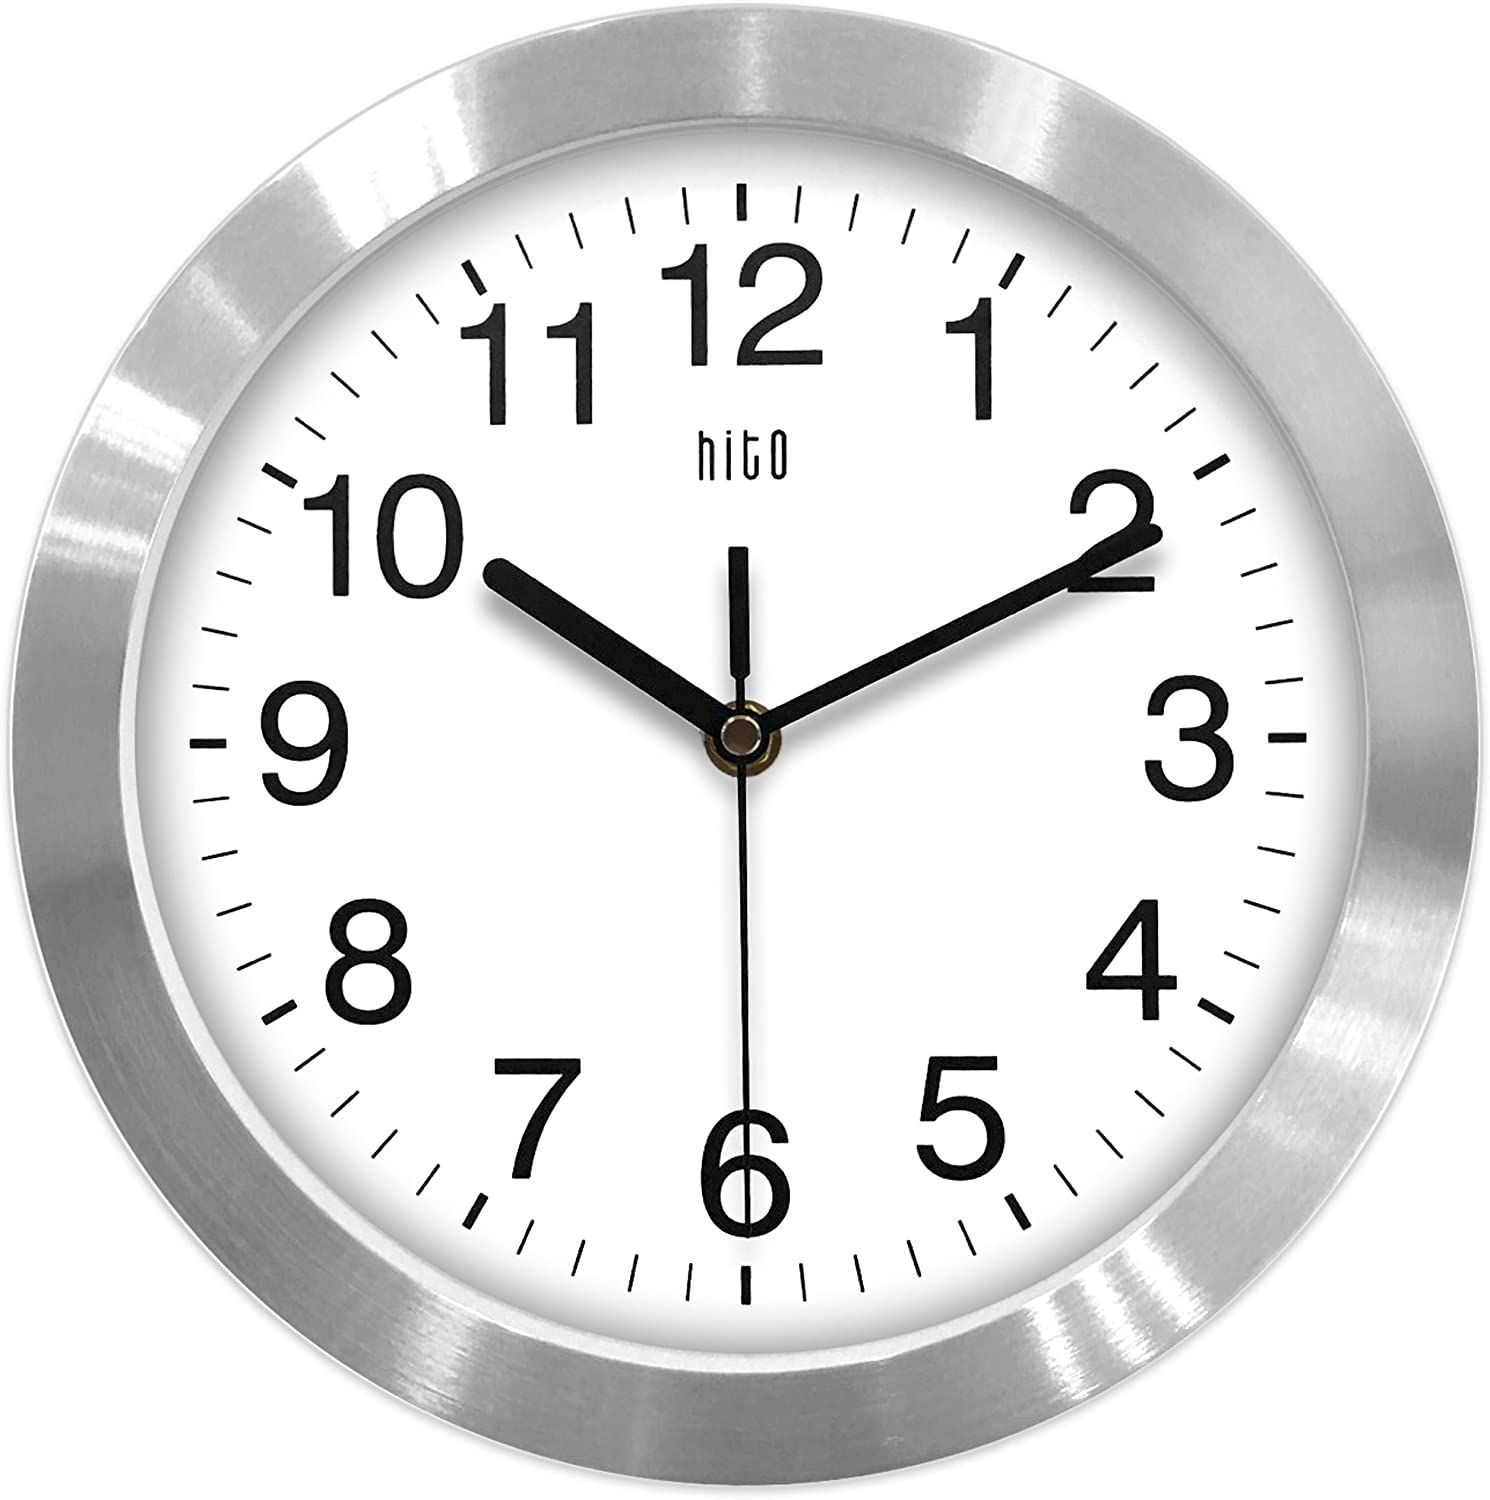 Hito Modern Silent Wall Clock Non Ticking 10 Inch Excellent Accurate Sweep Movement Aluminum Frame In 2020 Wall Clock Metal Wall Clock Led Wall Clock